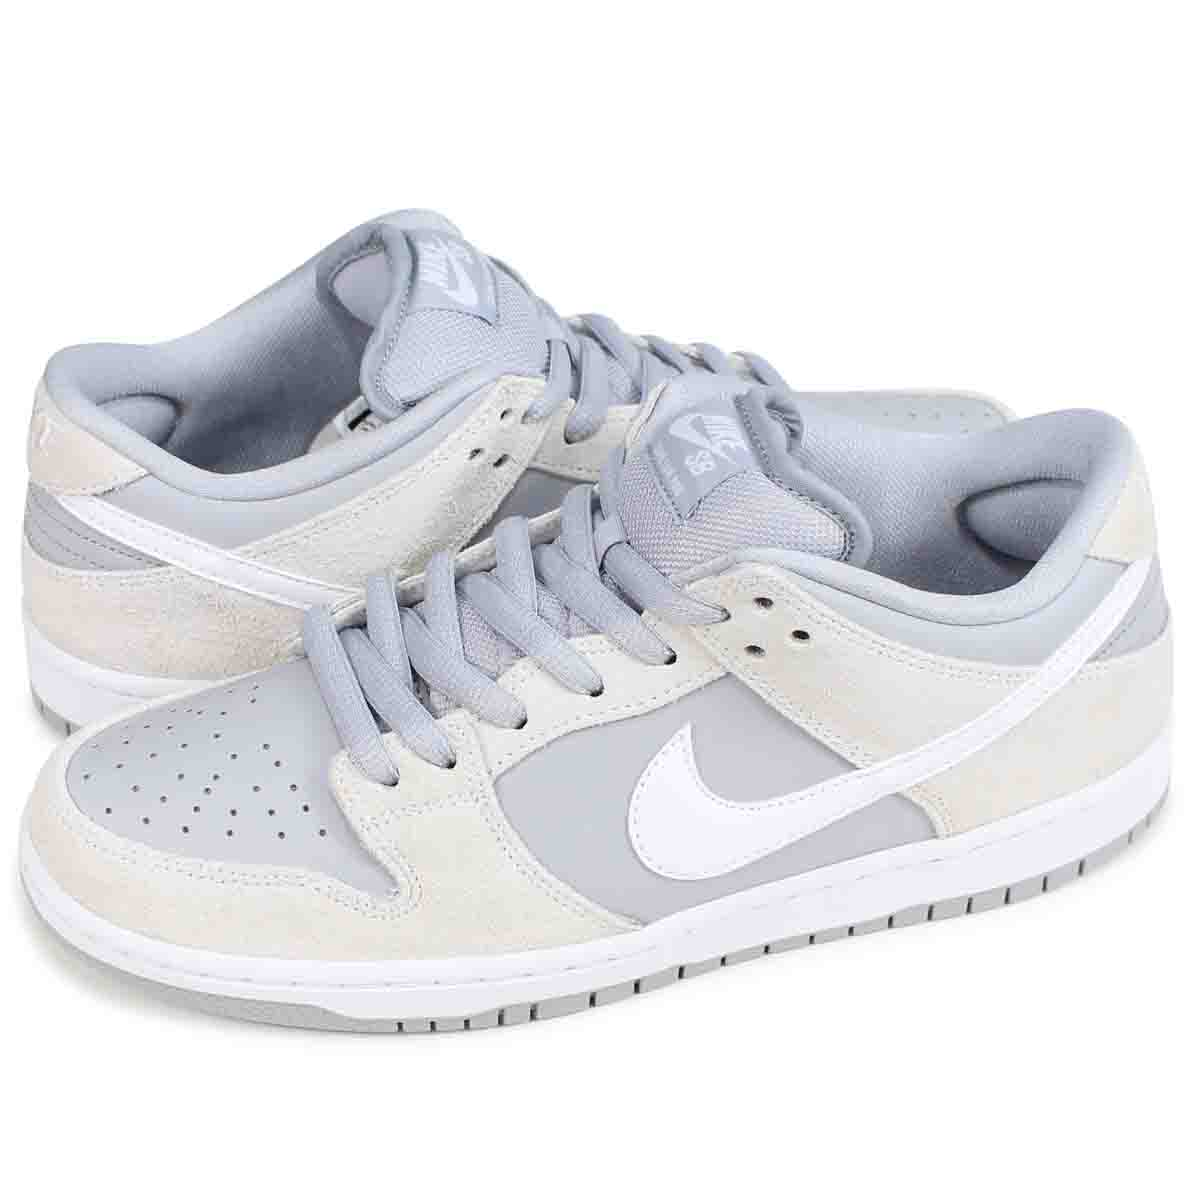 new concept 97731 ef657 NIKE SB DUNK LOW TRD Nike dunk sneakers men AR0778-110 white load planned  Shinnyu load in reservation product 820 containing